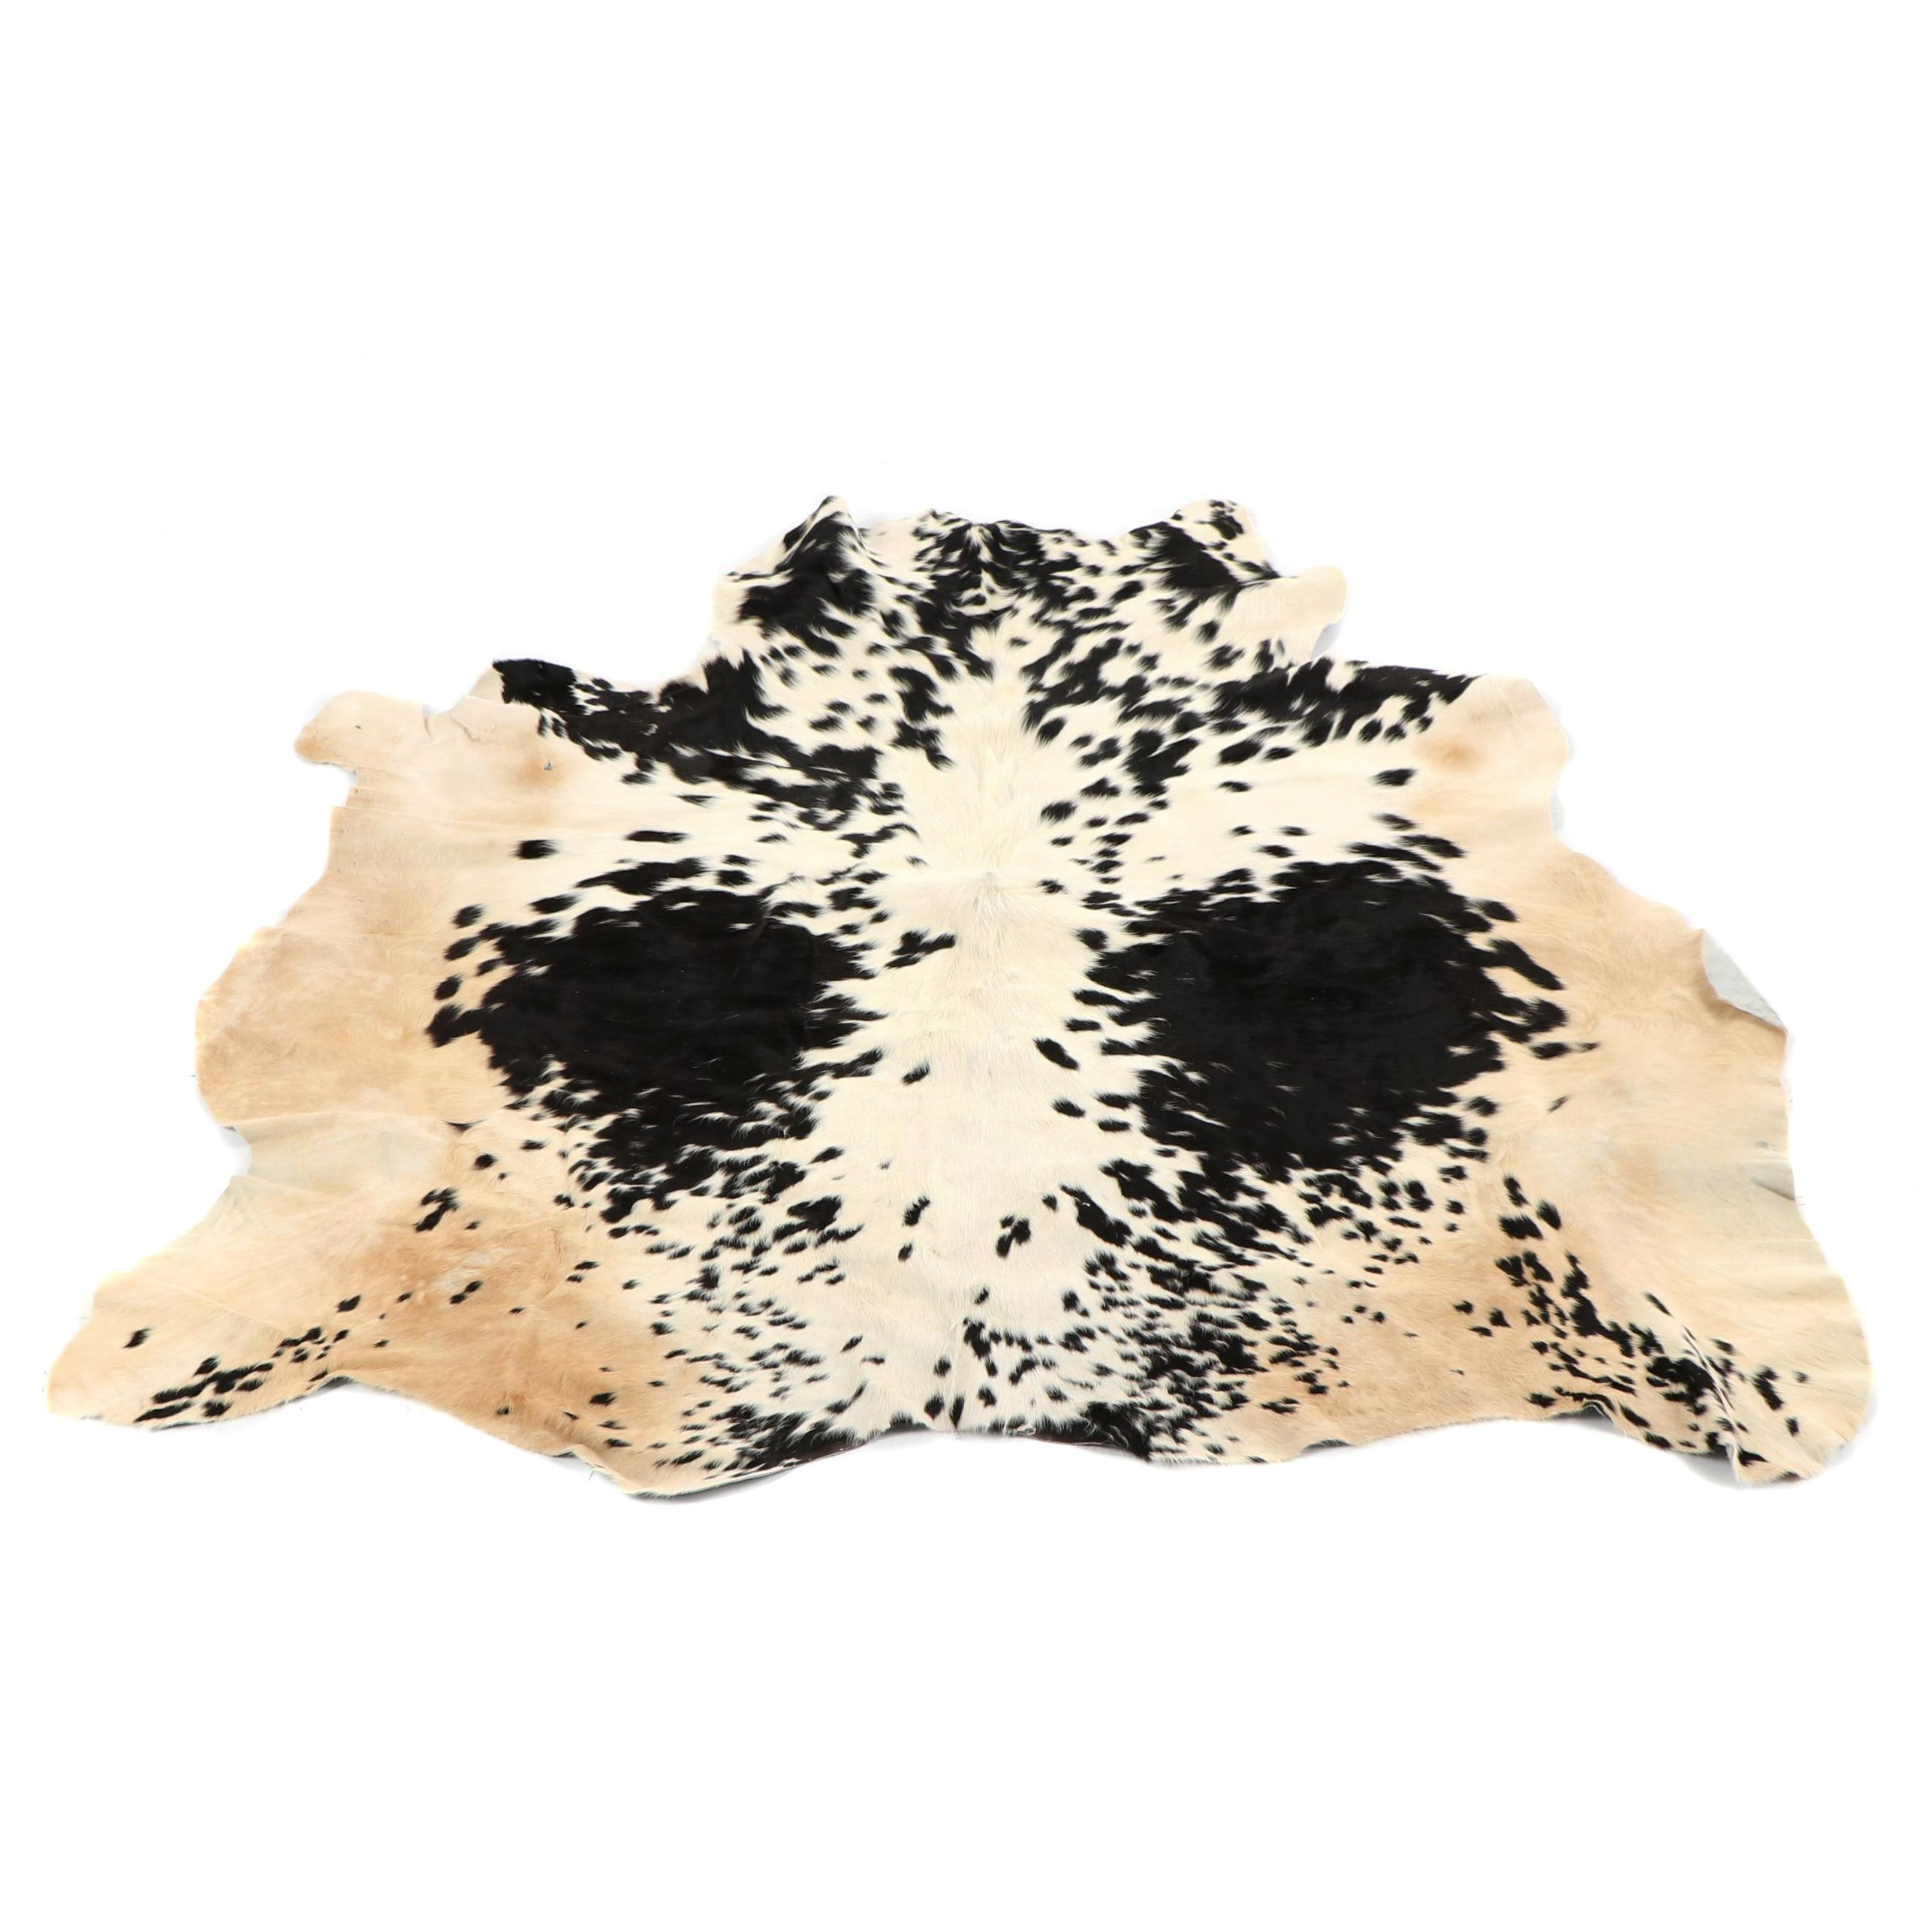 Natural White and Black Spotted Cowhide Floor Covering